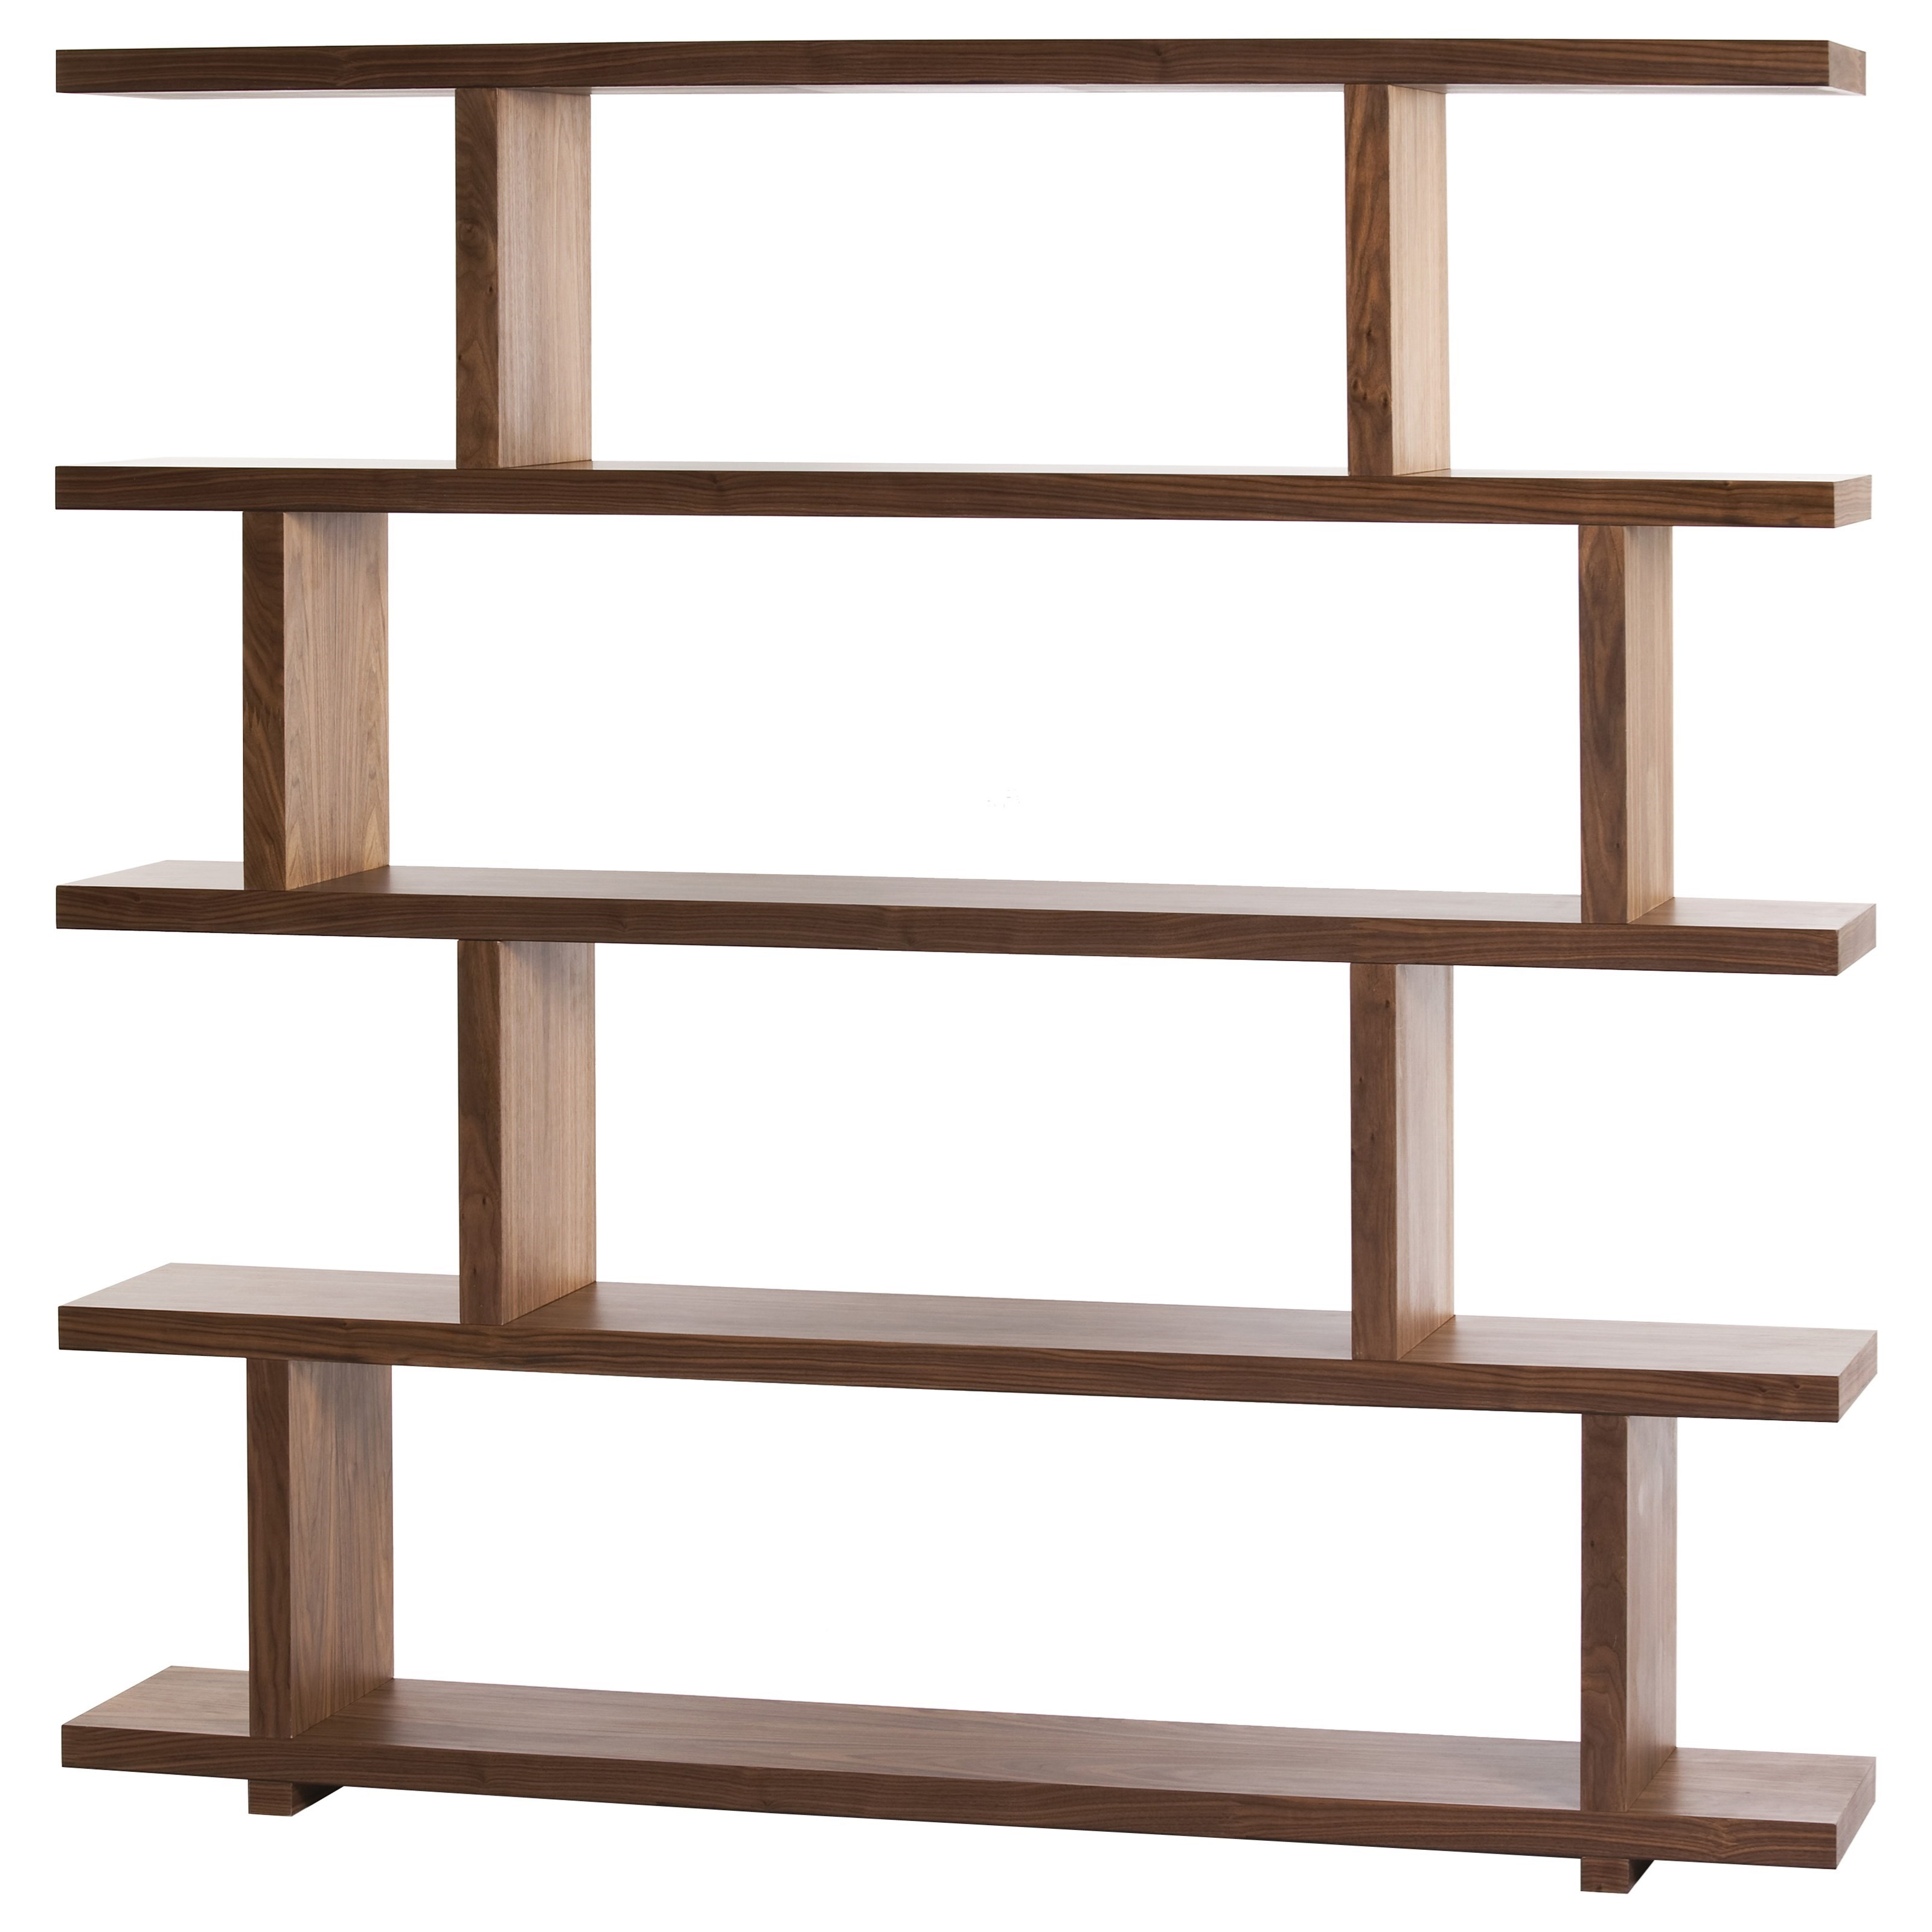 Miri Open Bookcase by Moe's Home Collection at Stoney Creek Furniture